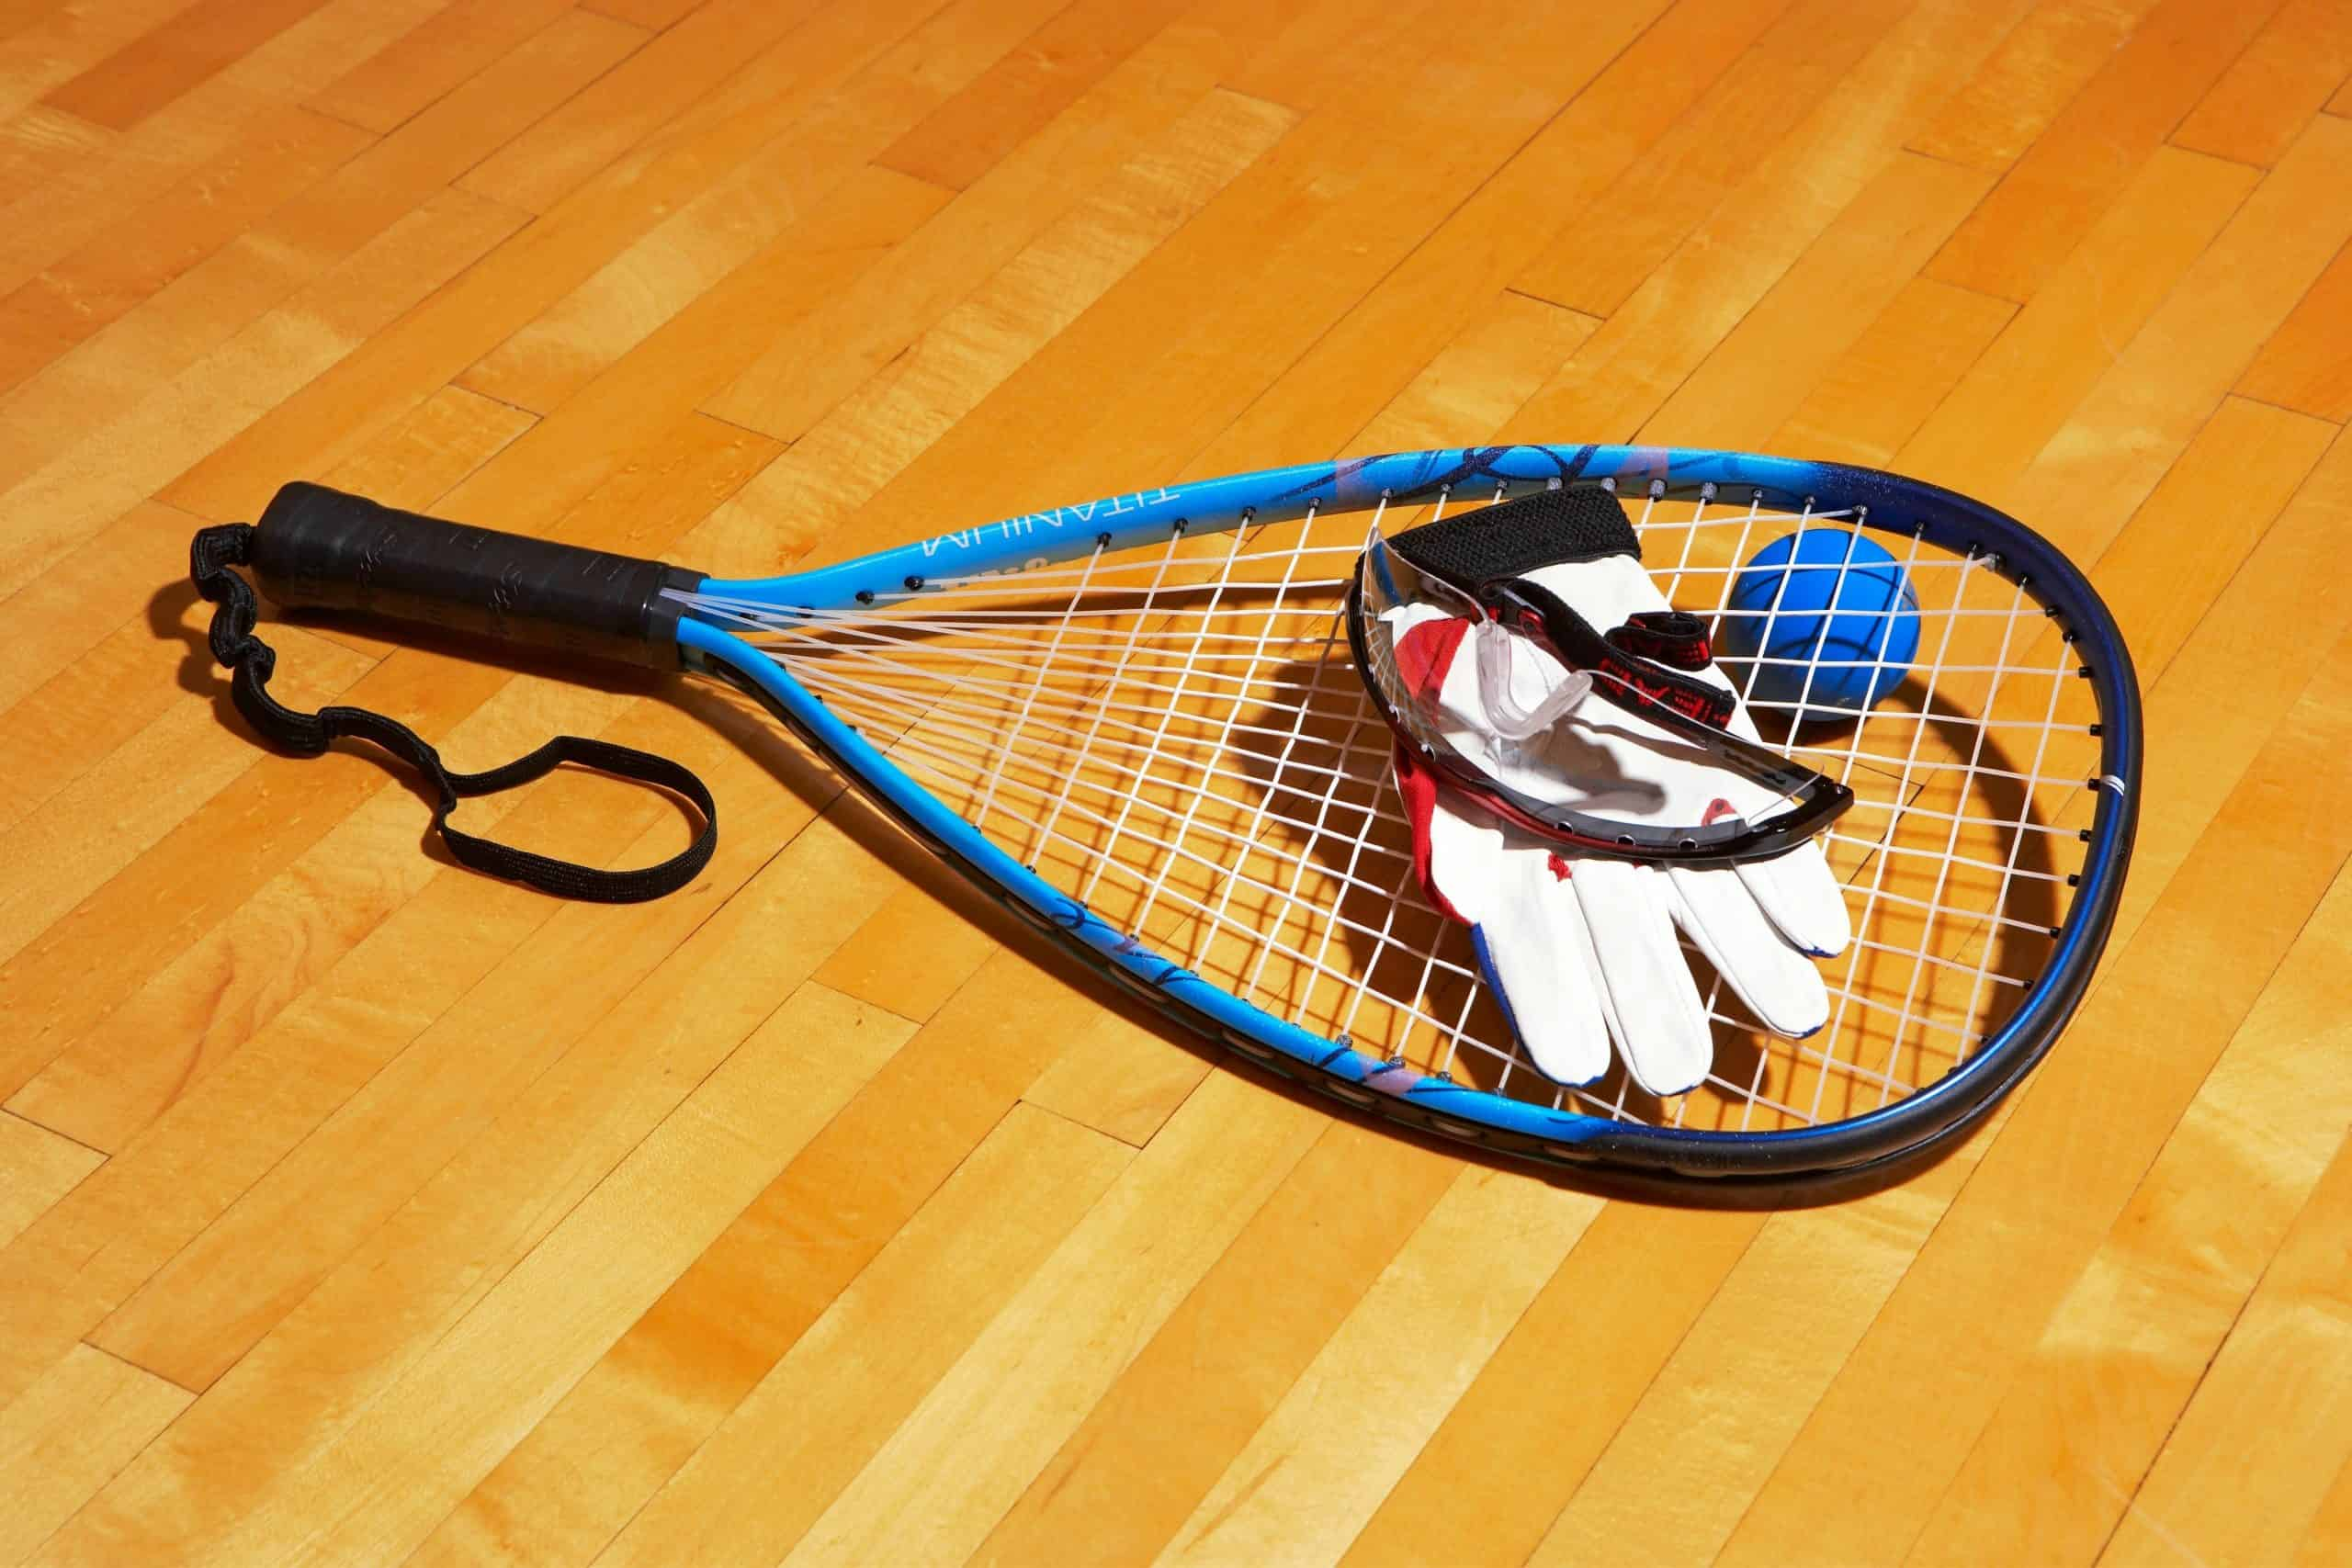 Racquetball equipment, racquetball racquet, racquetball ball, racquetball glove, racquetball goggles.